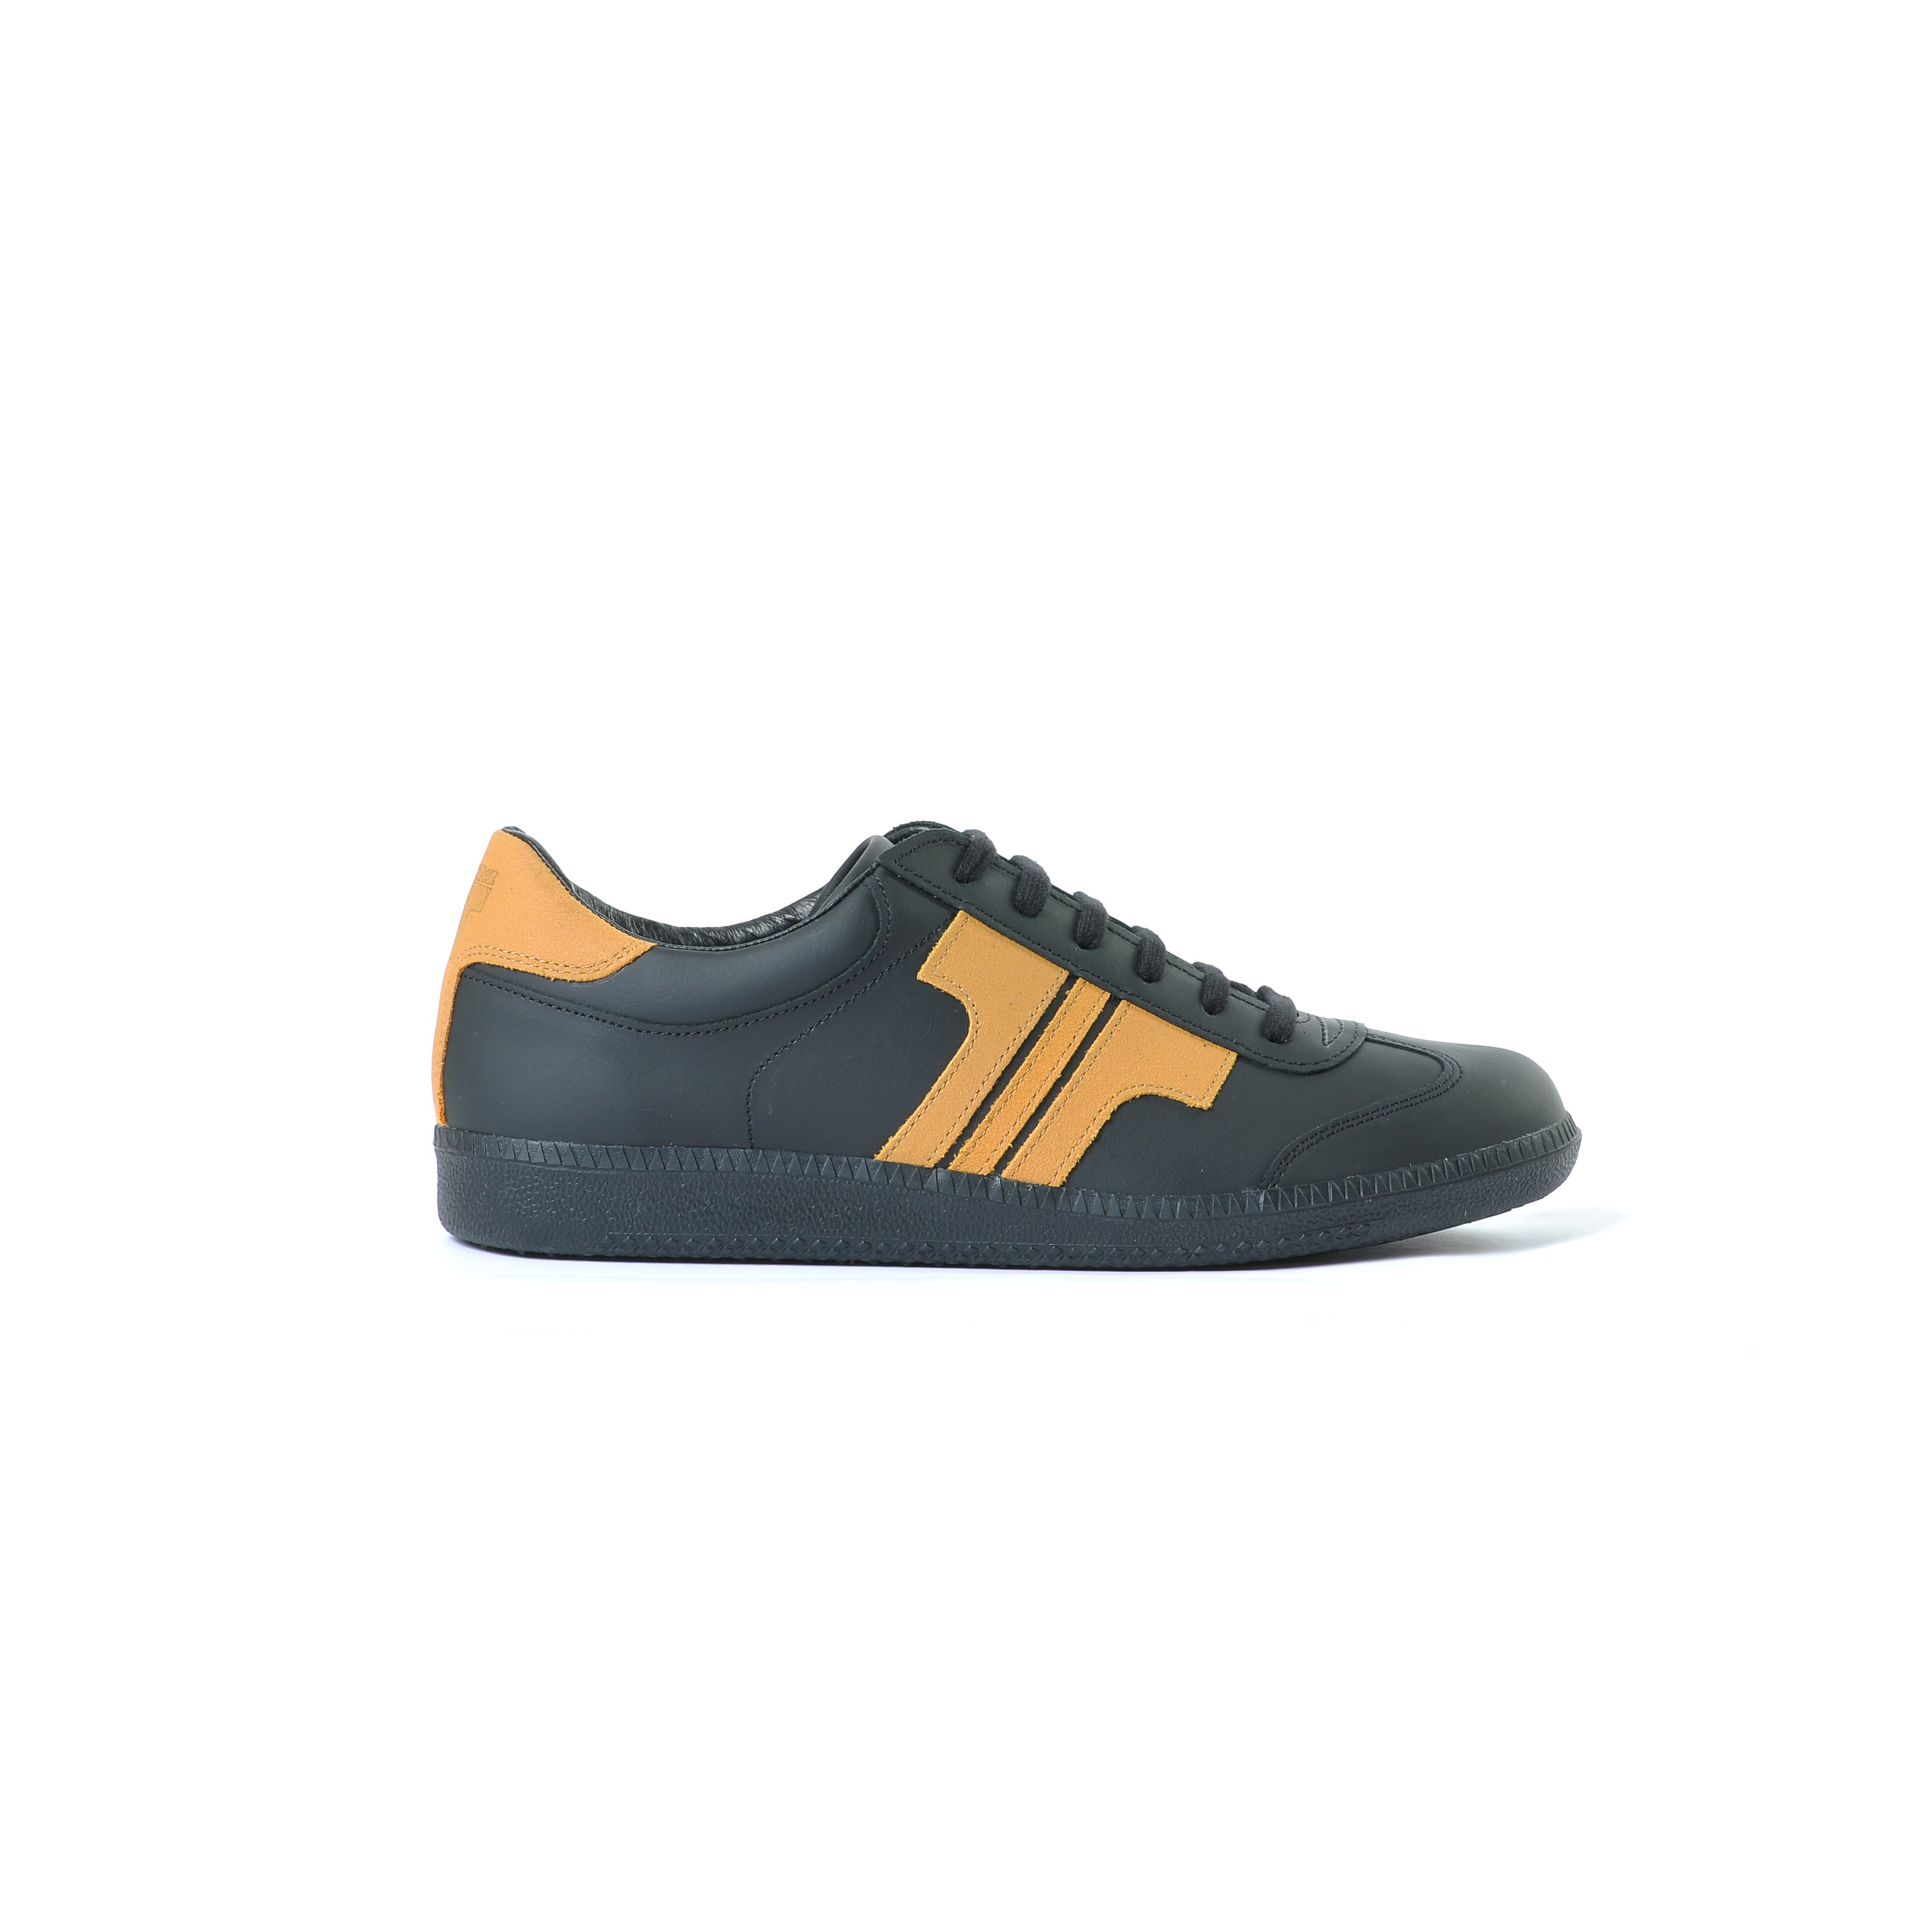 Tisza shoes - Compakt - Black-lion